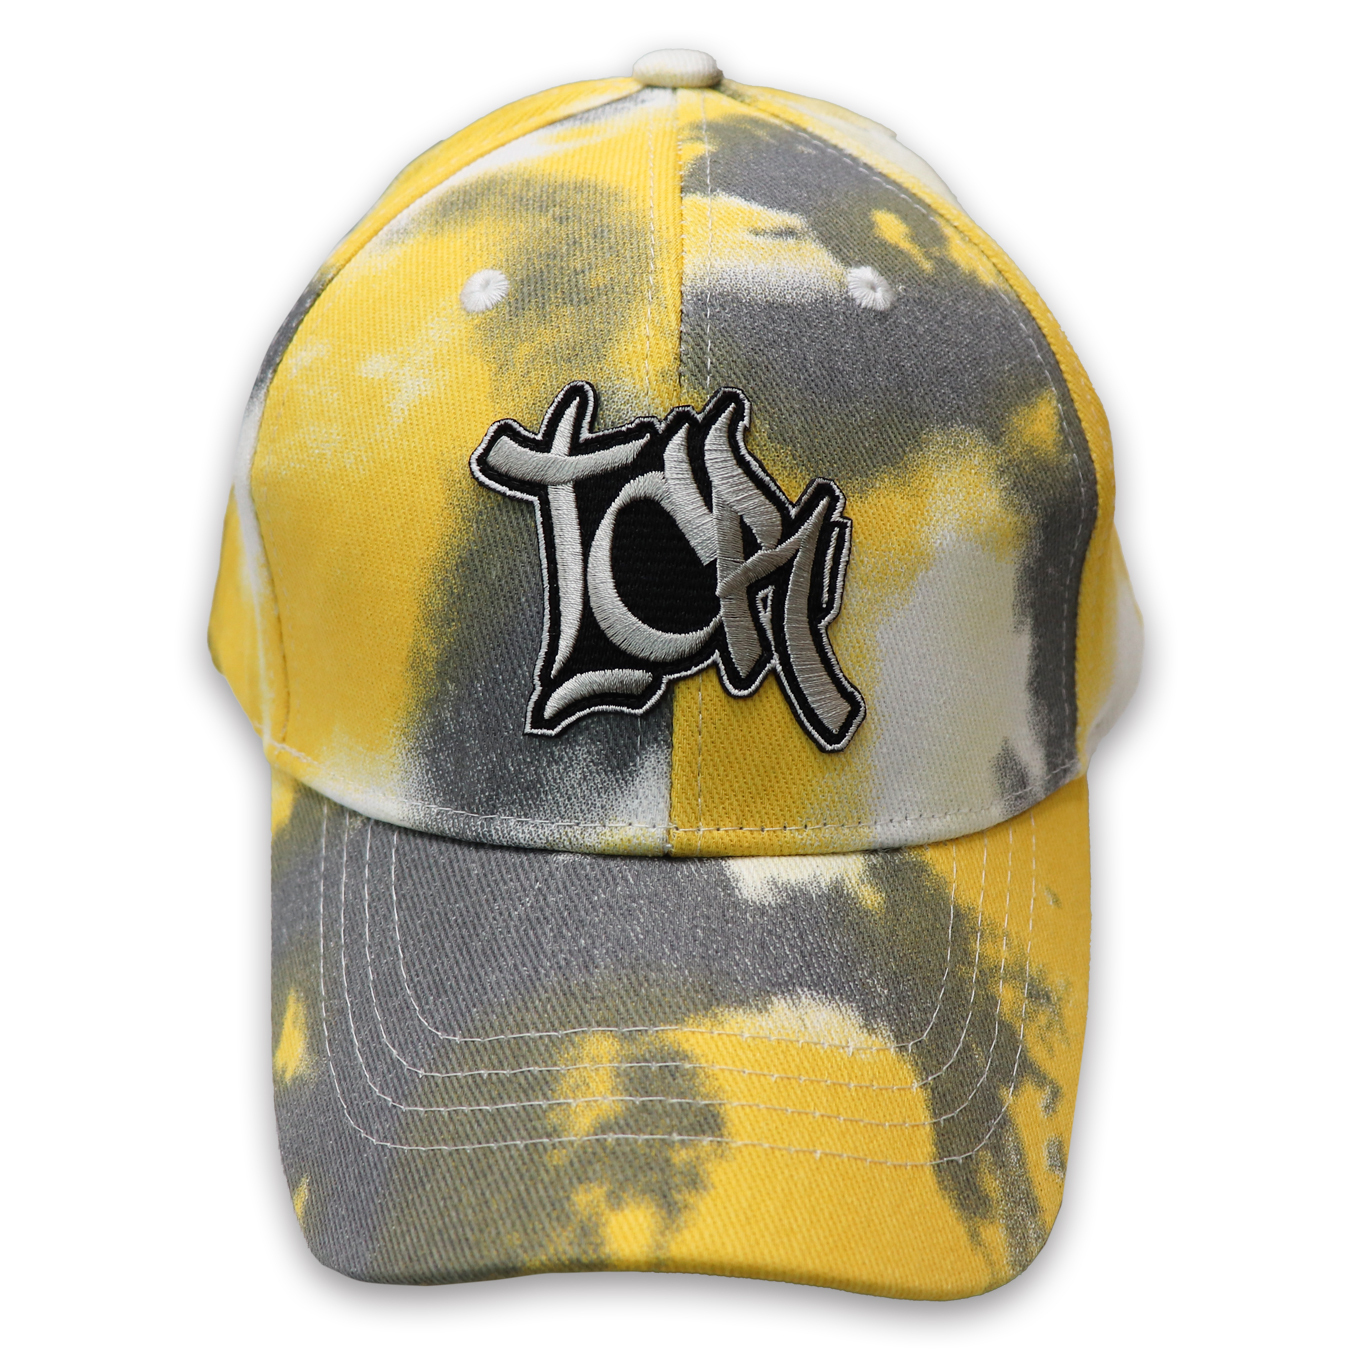 T.C.R EMBROIDERY TIE DYE CAP - YELLOW / GRAY